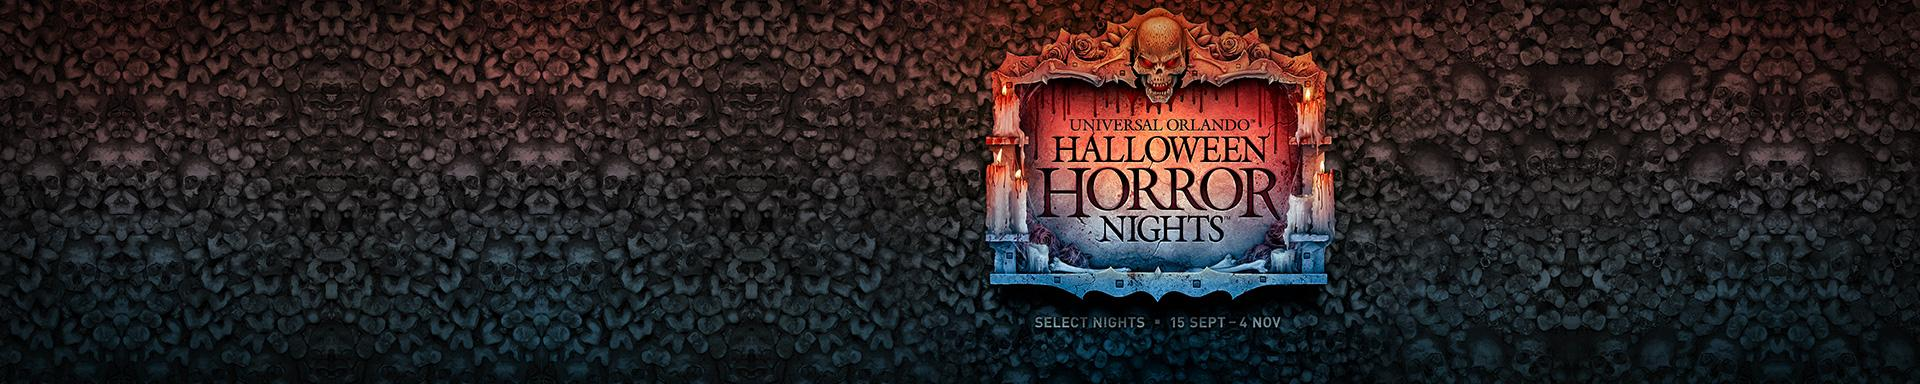 Visit Universal Orlando™ Halloween Horror Nights™ logo